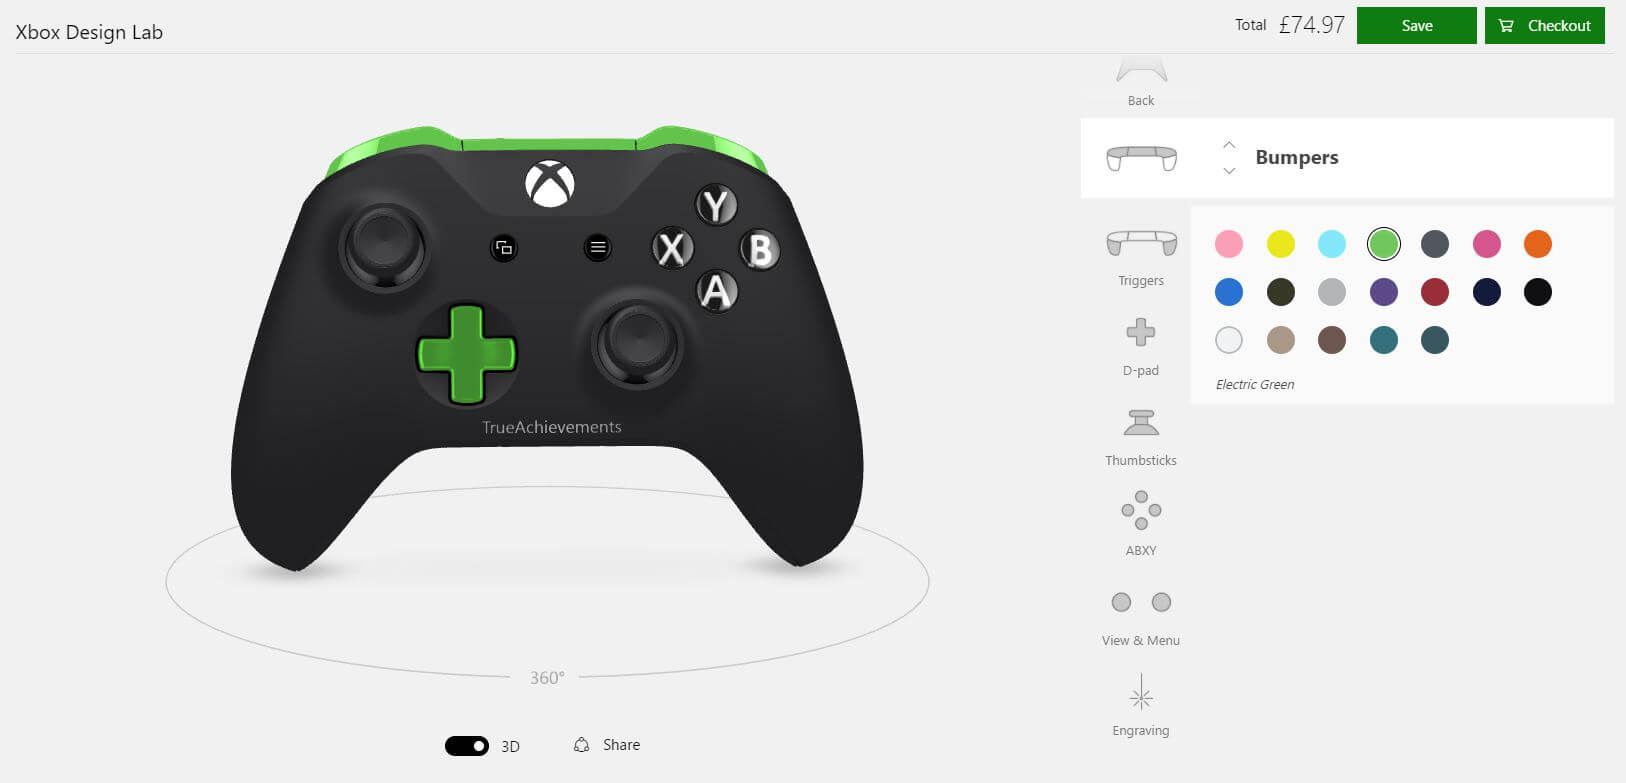 Xbox Design Lab Adds New Customization Options, Available the UK